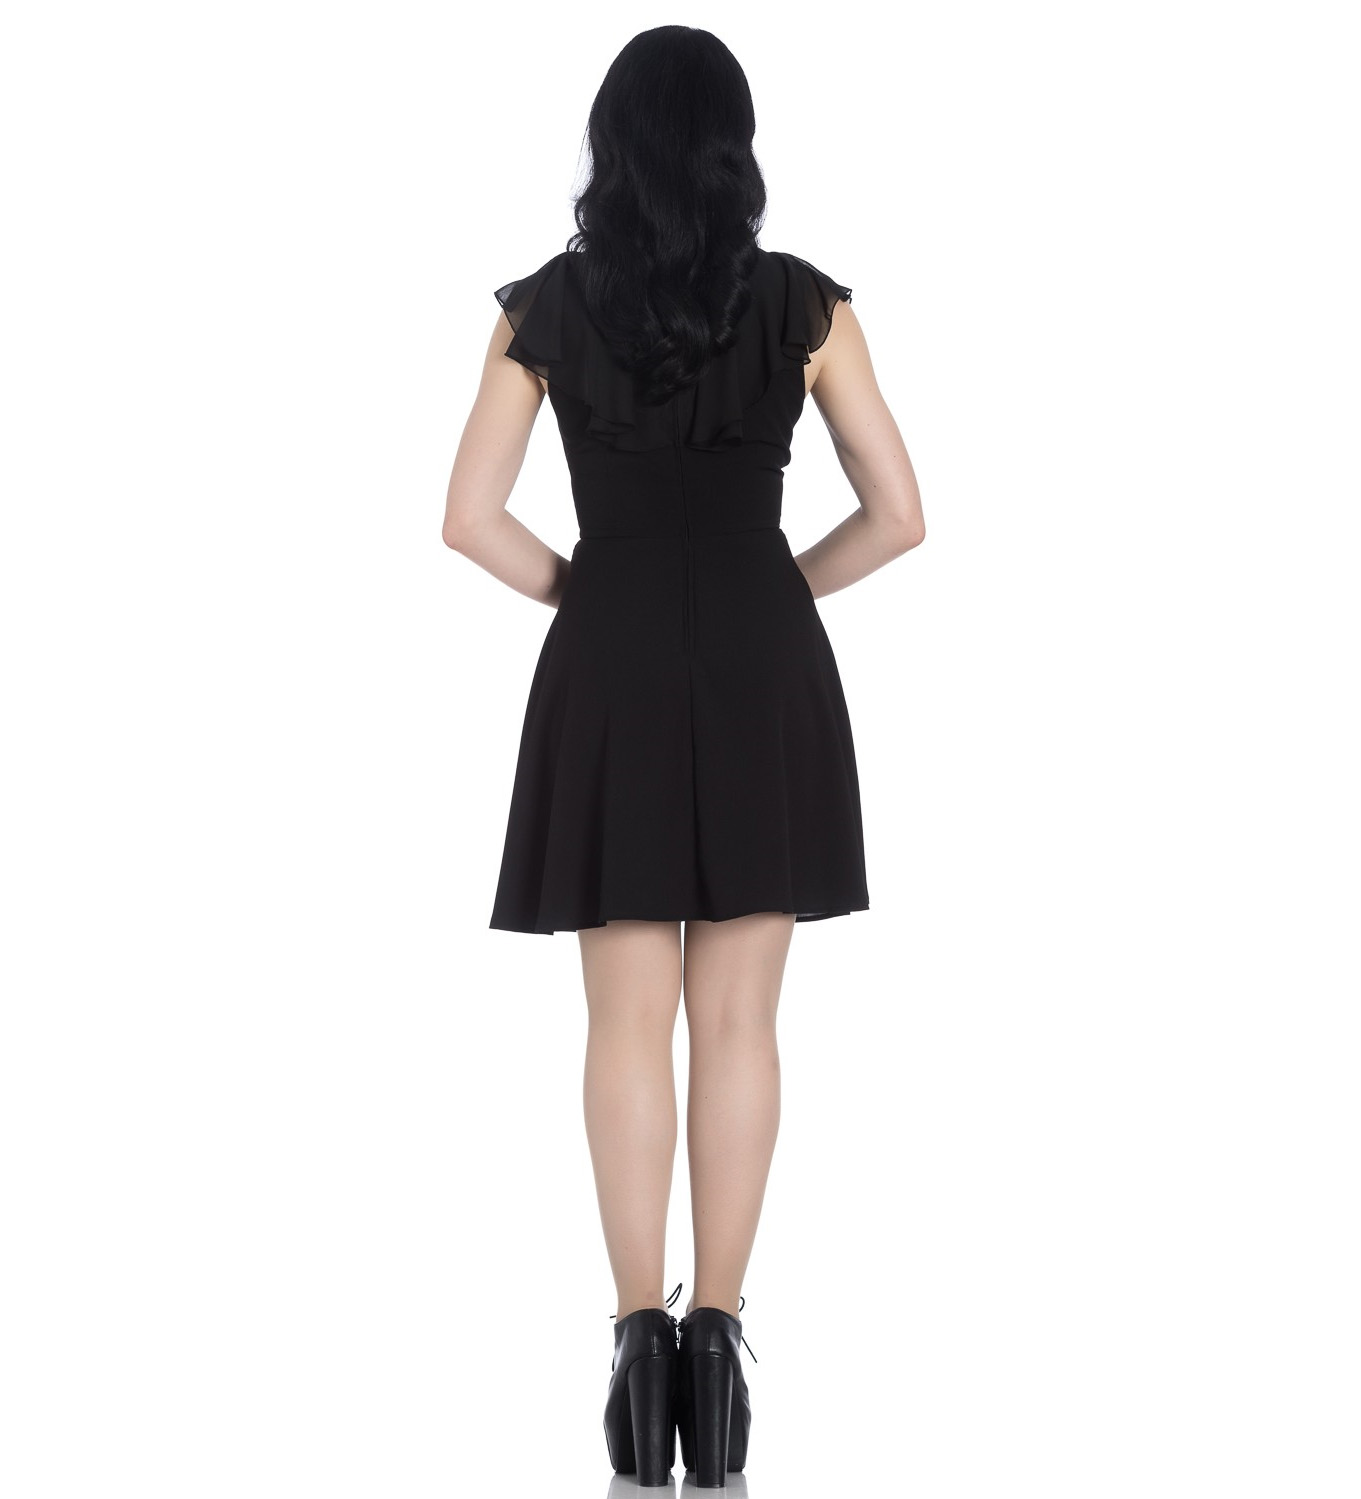 Hell-Bunny-Floaty-Lace-Up-Goth-Witch-Punk-Mini-Dress-ONYX-Black-All-Sizes thumbnail 19